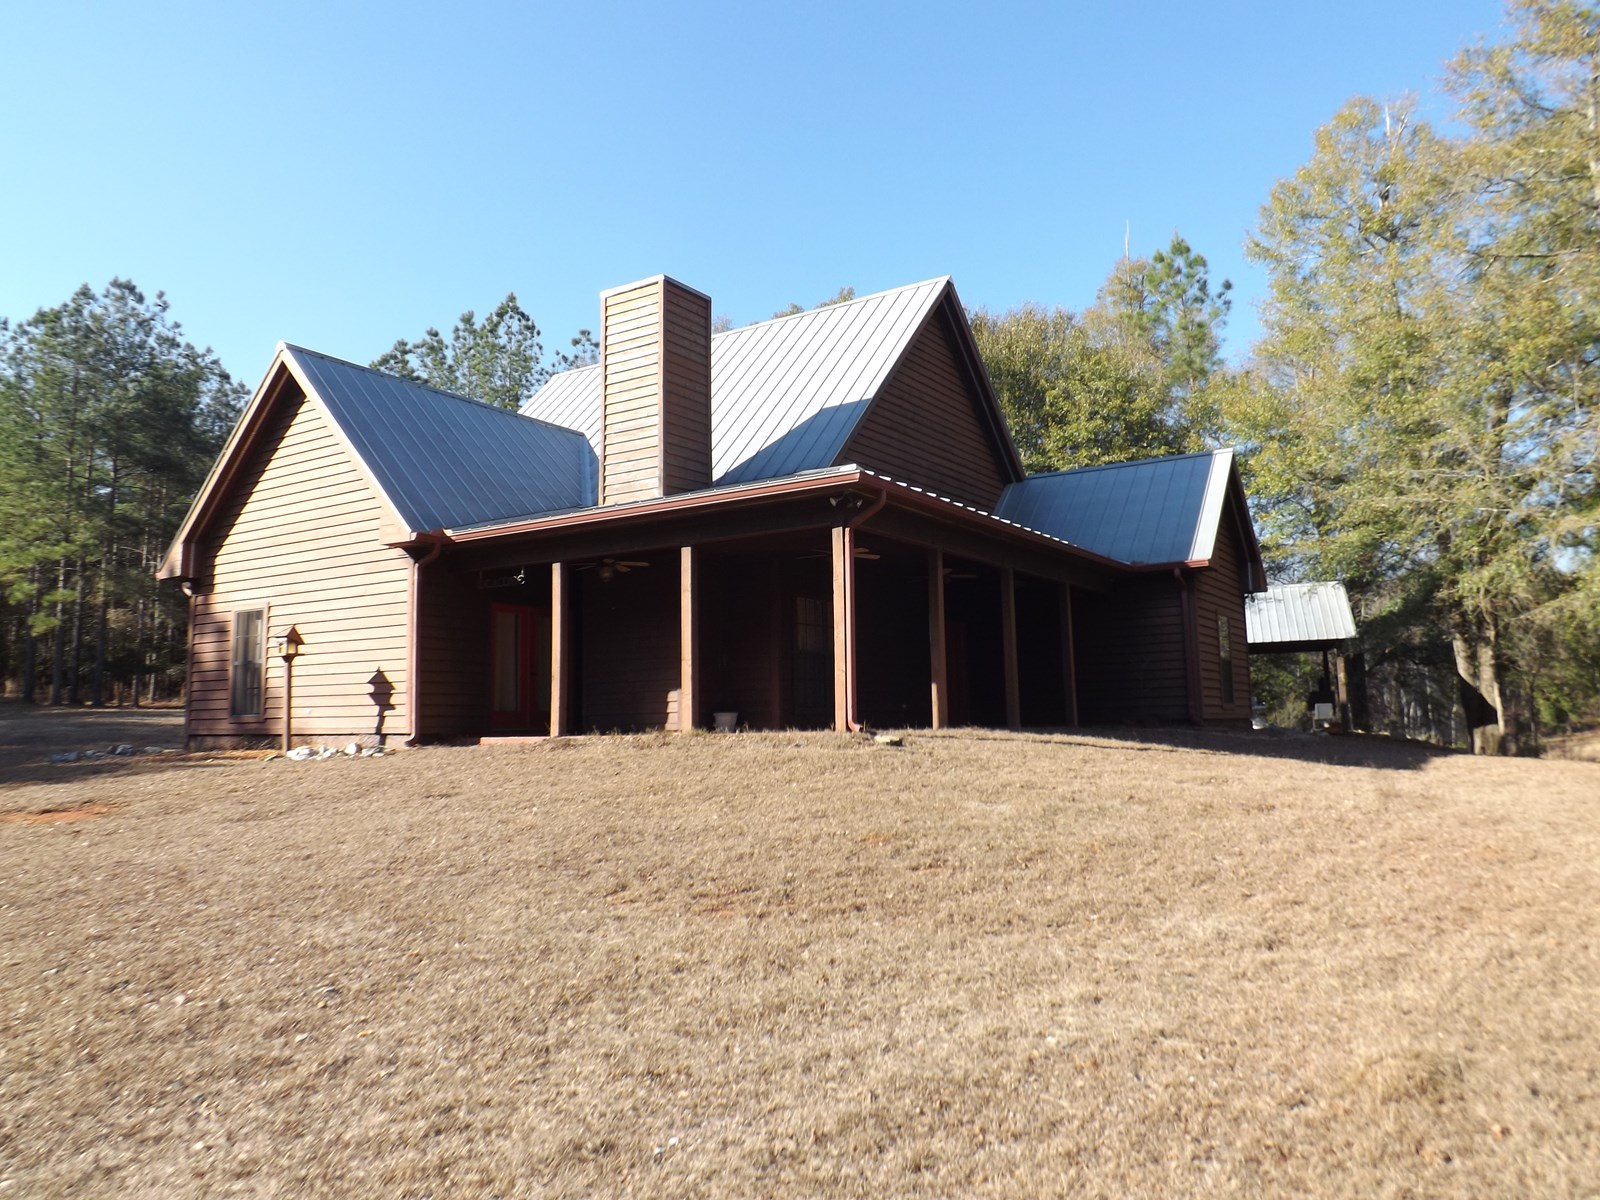 Recreational/Timber/Hunting Land For Sale In Alabama